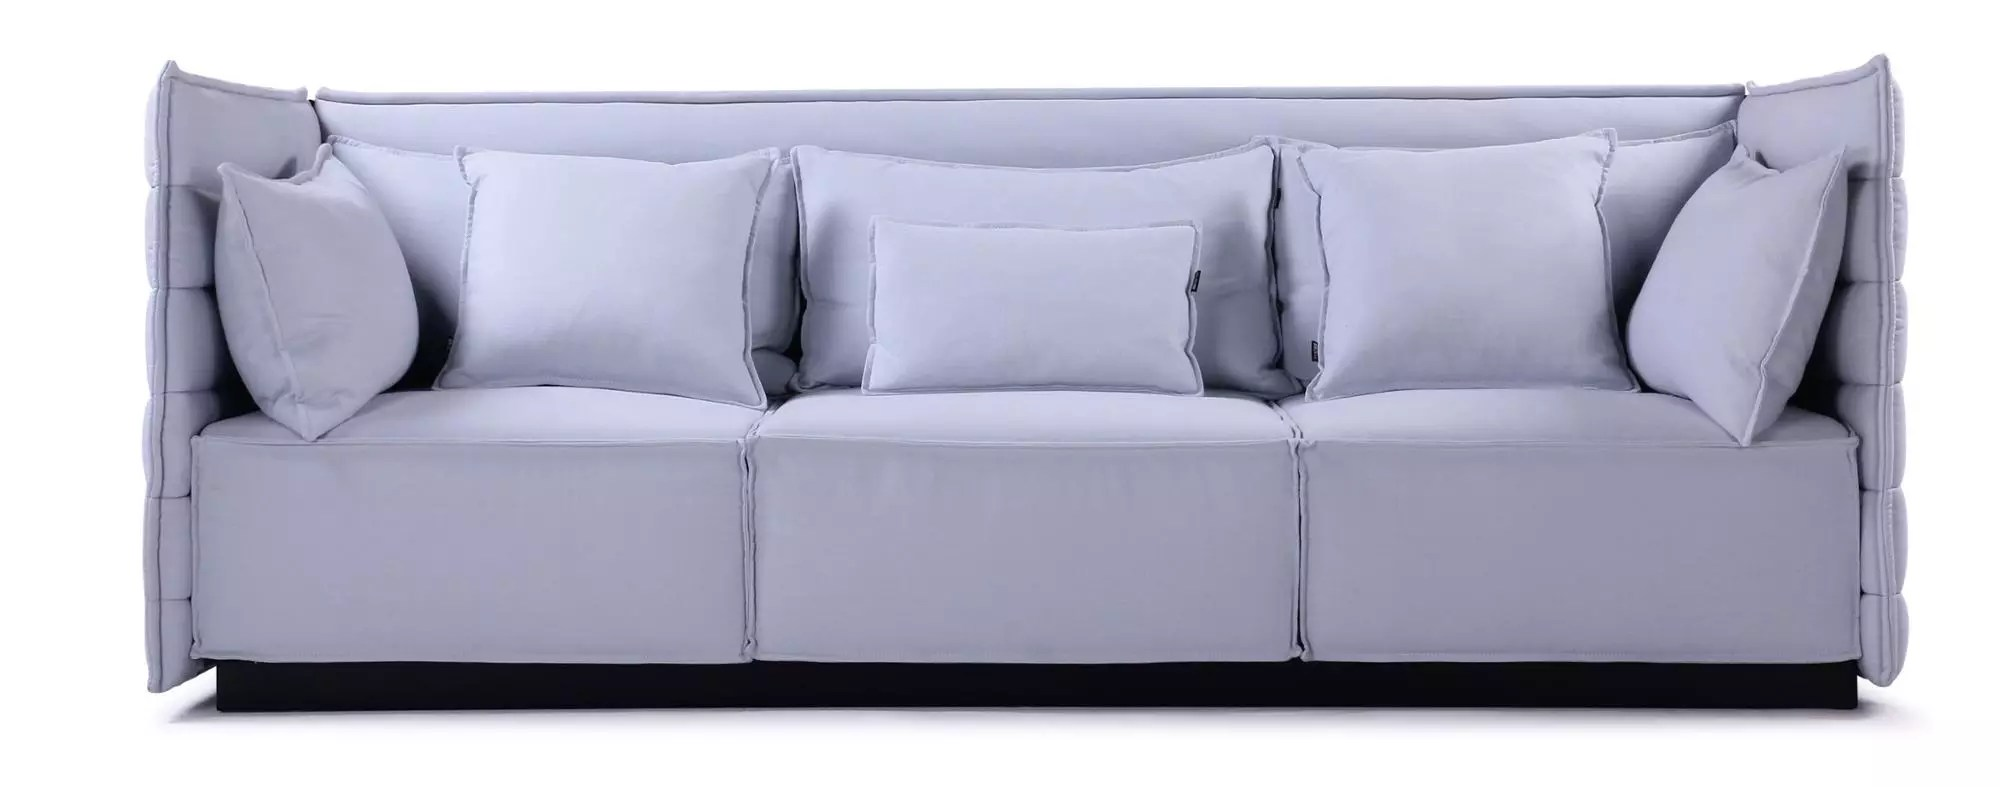 Sofa Unik Sectional Sofa Furniture Couch Living Room Unik 2018 Desain Baru Buy Furniture Sofa Sofa Ruang Tamu Sofa Sofa Sectional Unik Product On Alibaba